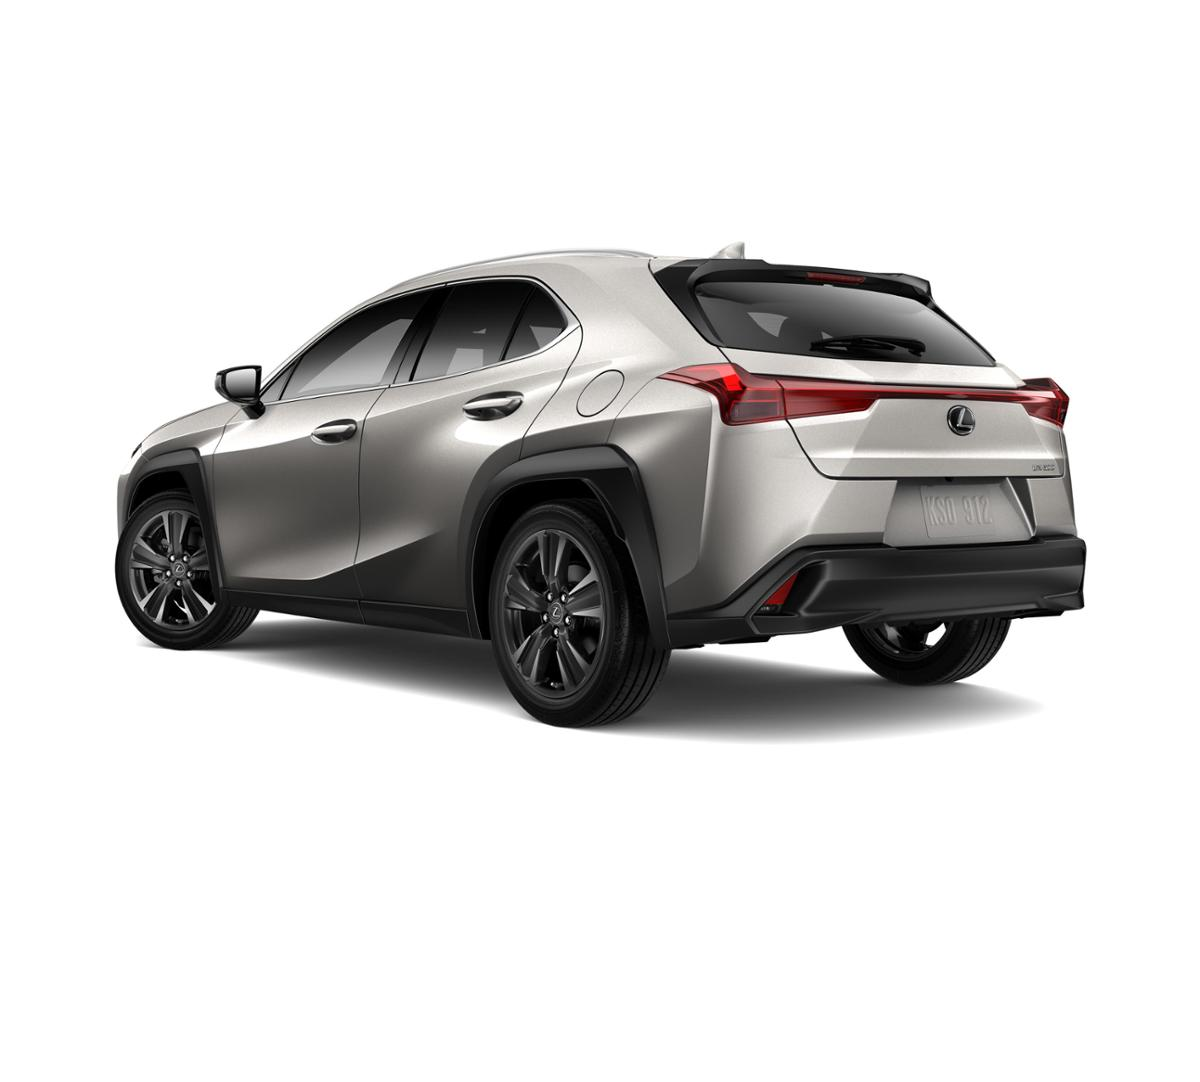 new 2019 atomic silver lexus ux 200 for sale in white plains ny w19553. Black Bedroom Furniture Sets. Home Design Ideas